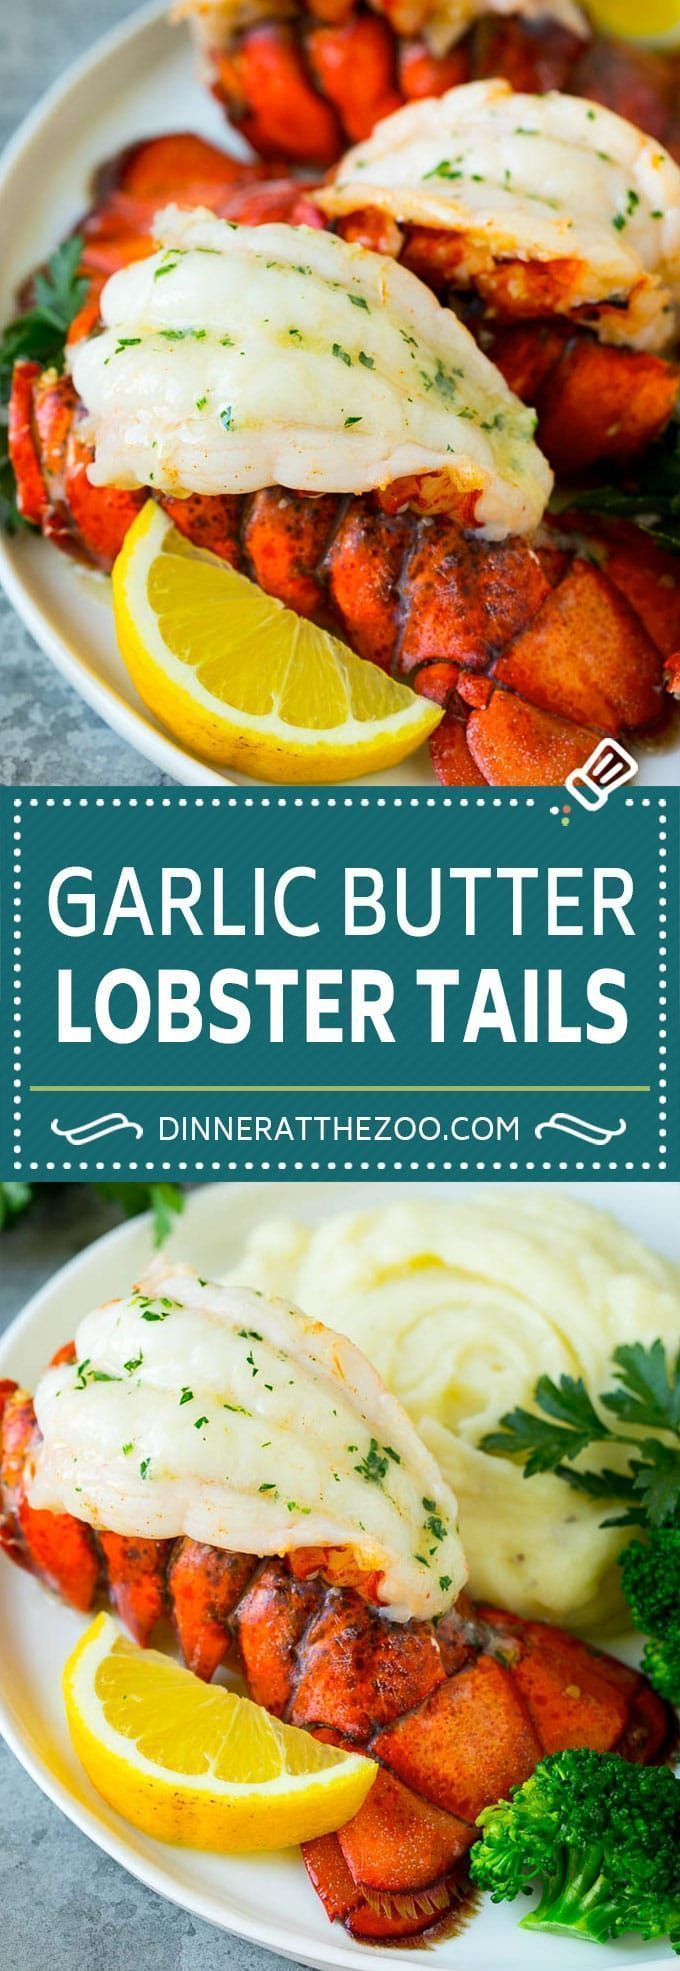 Garlic Butter Lobster Tails Recipe | Broiled Lobster Tails | Lobster Recipe #lobster #seafood #butter #keto #lowcarb #glutenfree #dinner #dinneratthezoo #lobstertail Garlic Butter Lobster Tails Recipe | Broiled Lobster Tails | Lobster Recipe #lobster #seafood #butter #keto #lowcarb #glutenfree #dinner #dinneratthezoo #lobstertail Garlic Butter Lobster Tails Recipe | Broiled Lobster Tails | Lobster Recipe #lobster #seafood #butter #keto #lowcarb #glutenfree #dinner #dinneratthezoo #lobstertail Ga #lobstertail